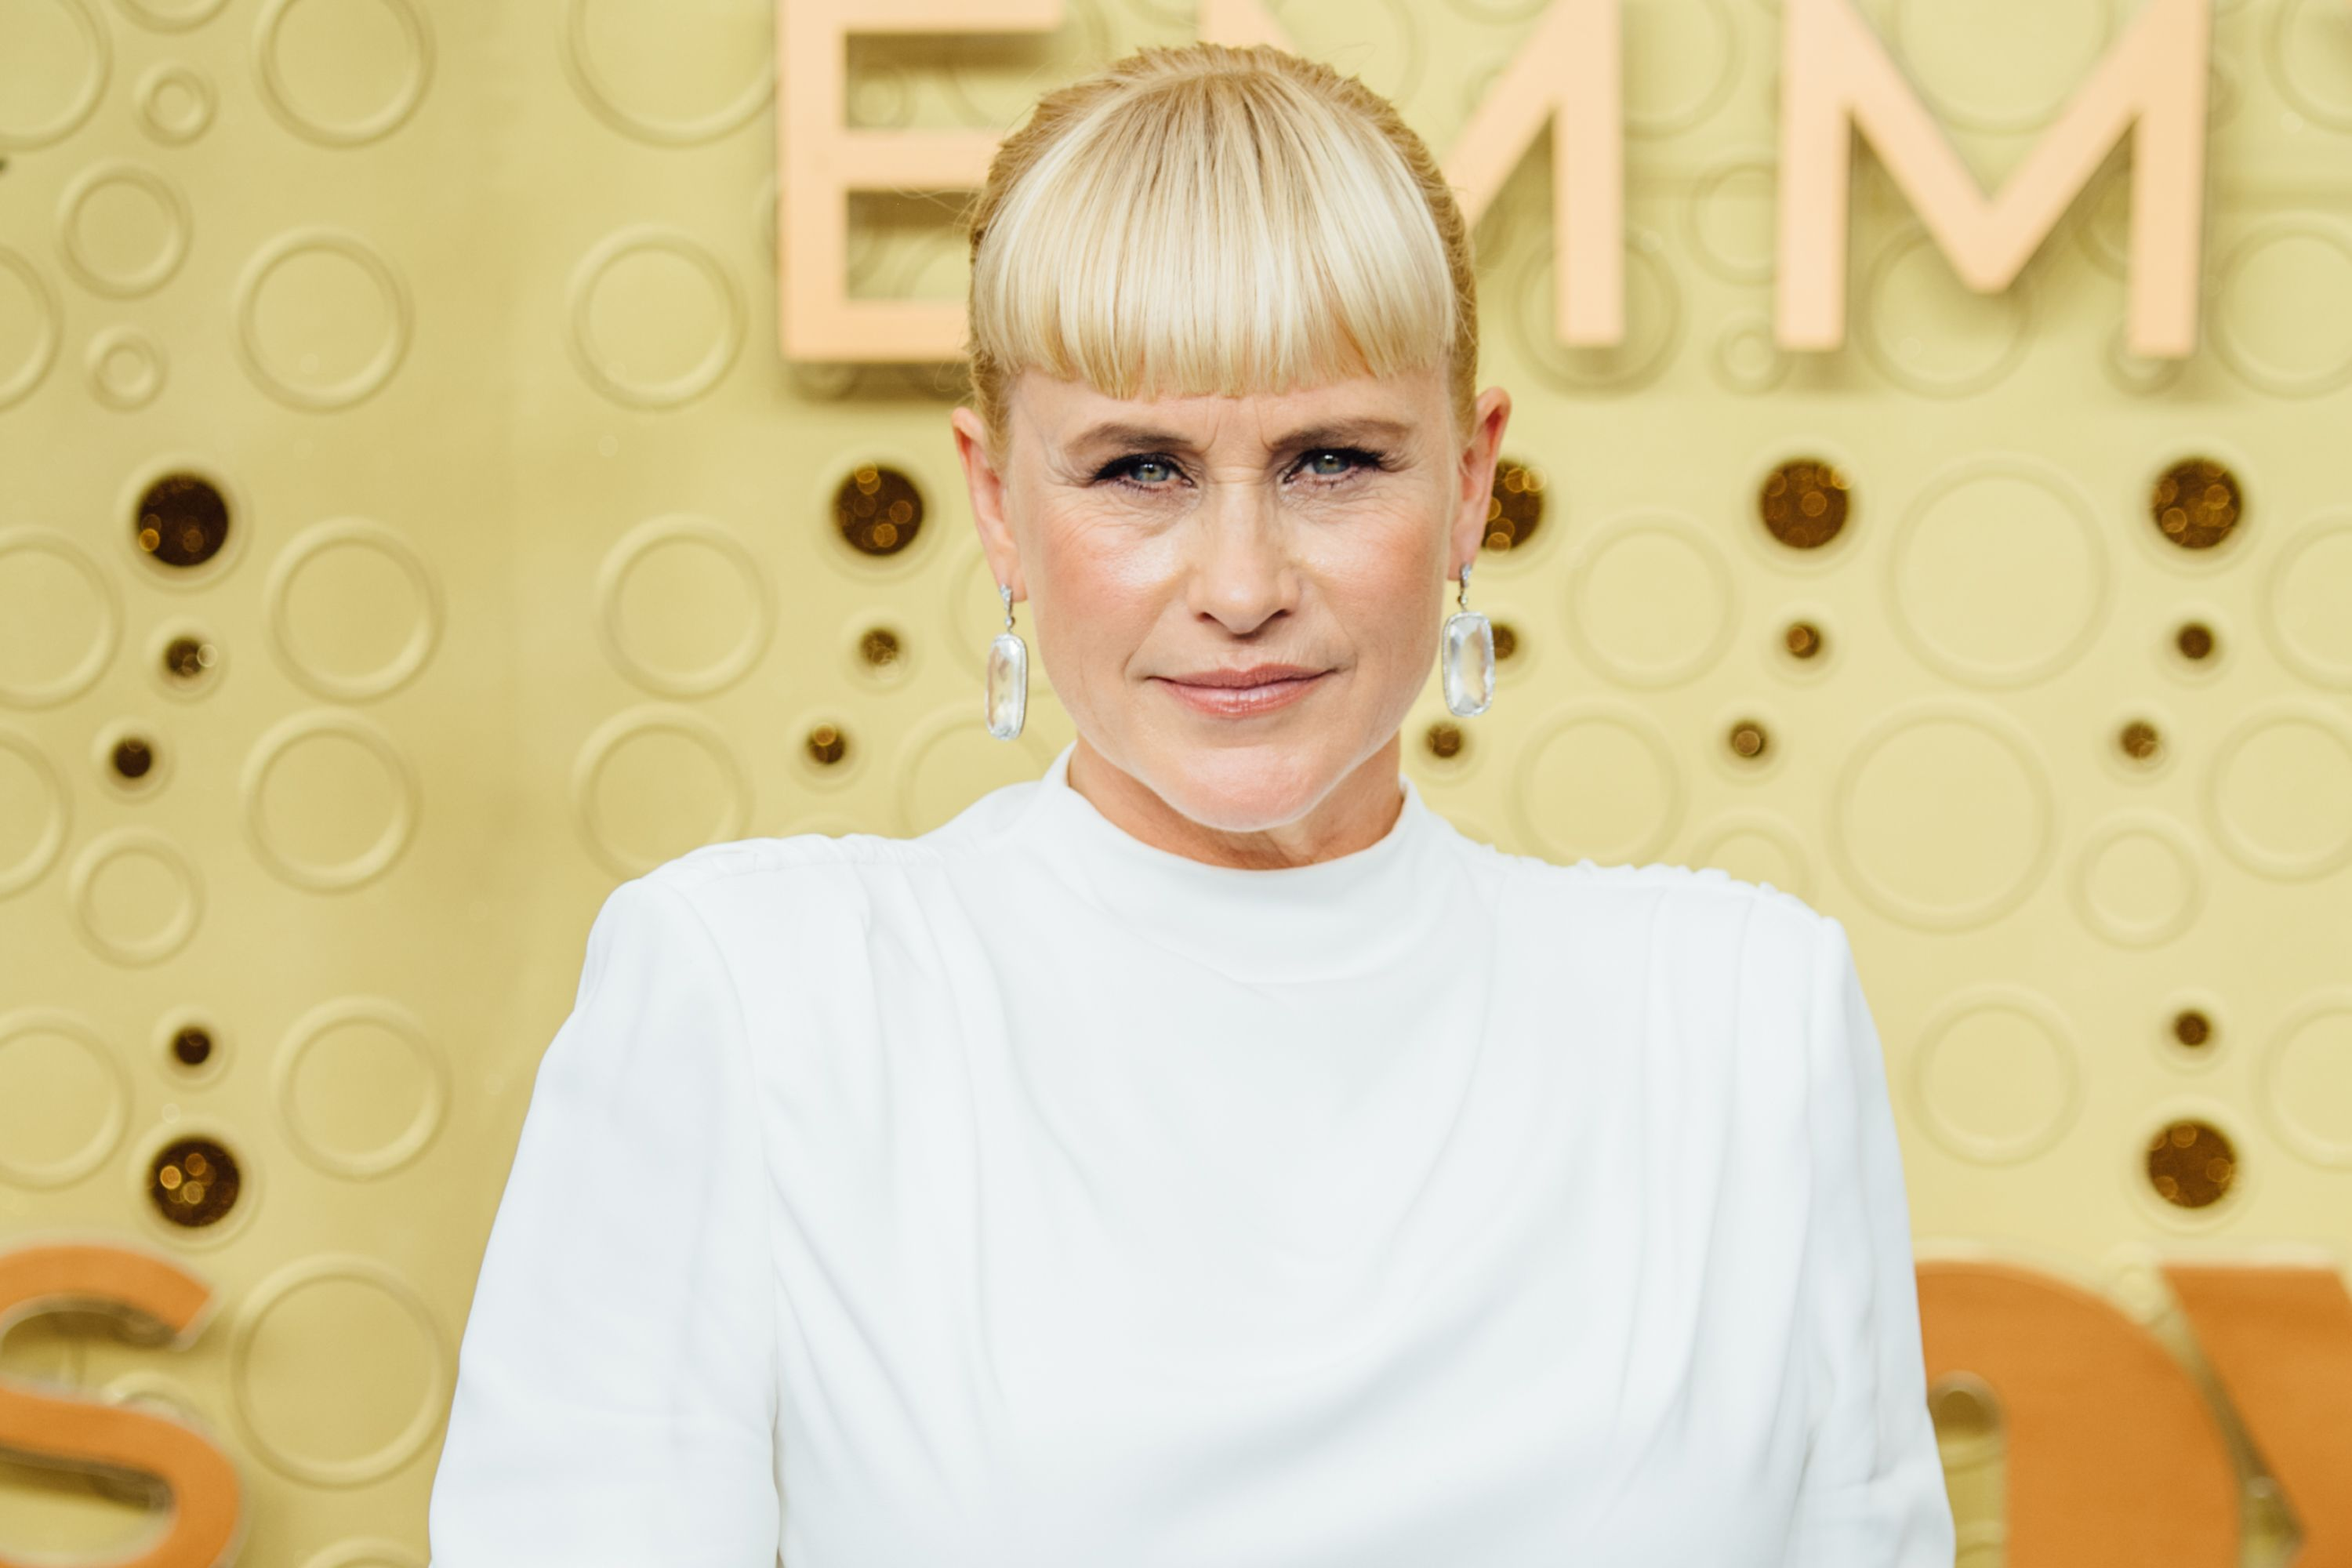 Patricia Arquette Is the Actor-Advocate Our World Needs